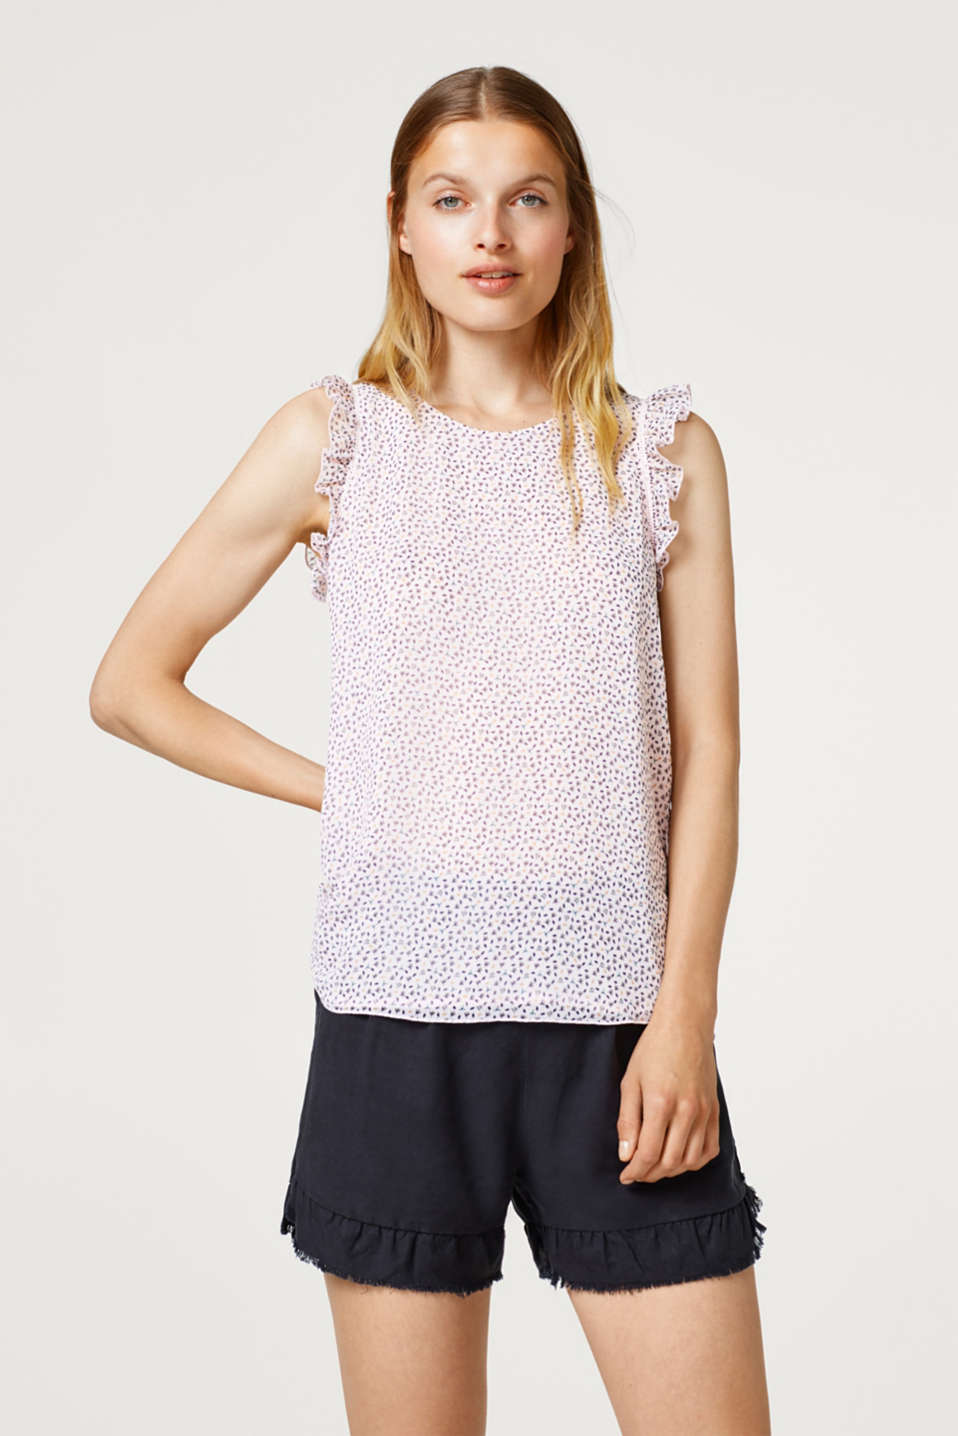 edc - Chiffon blouse top with a print and frills